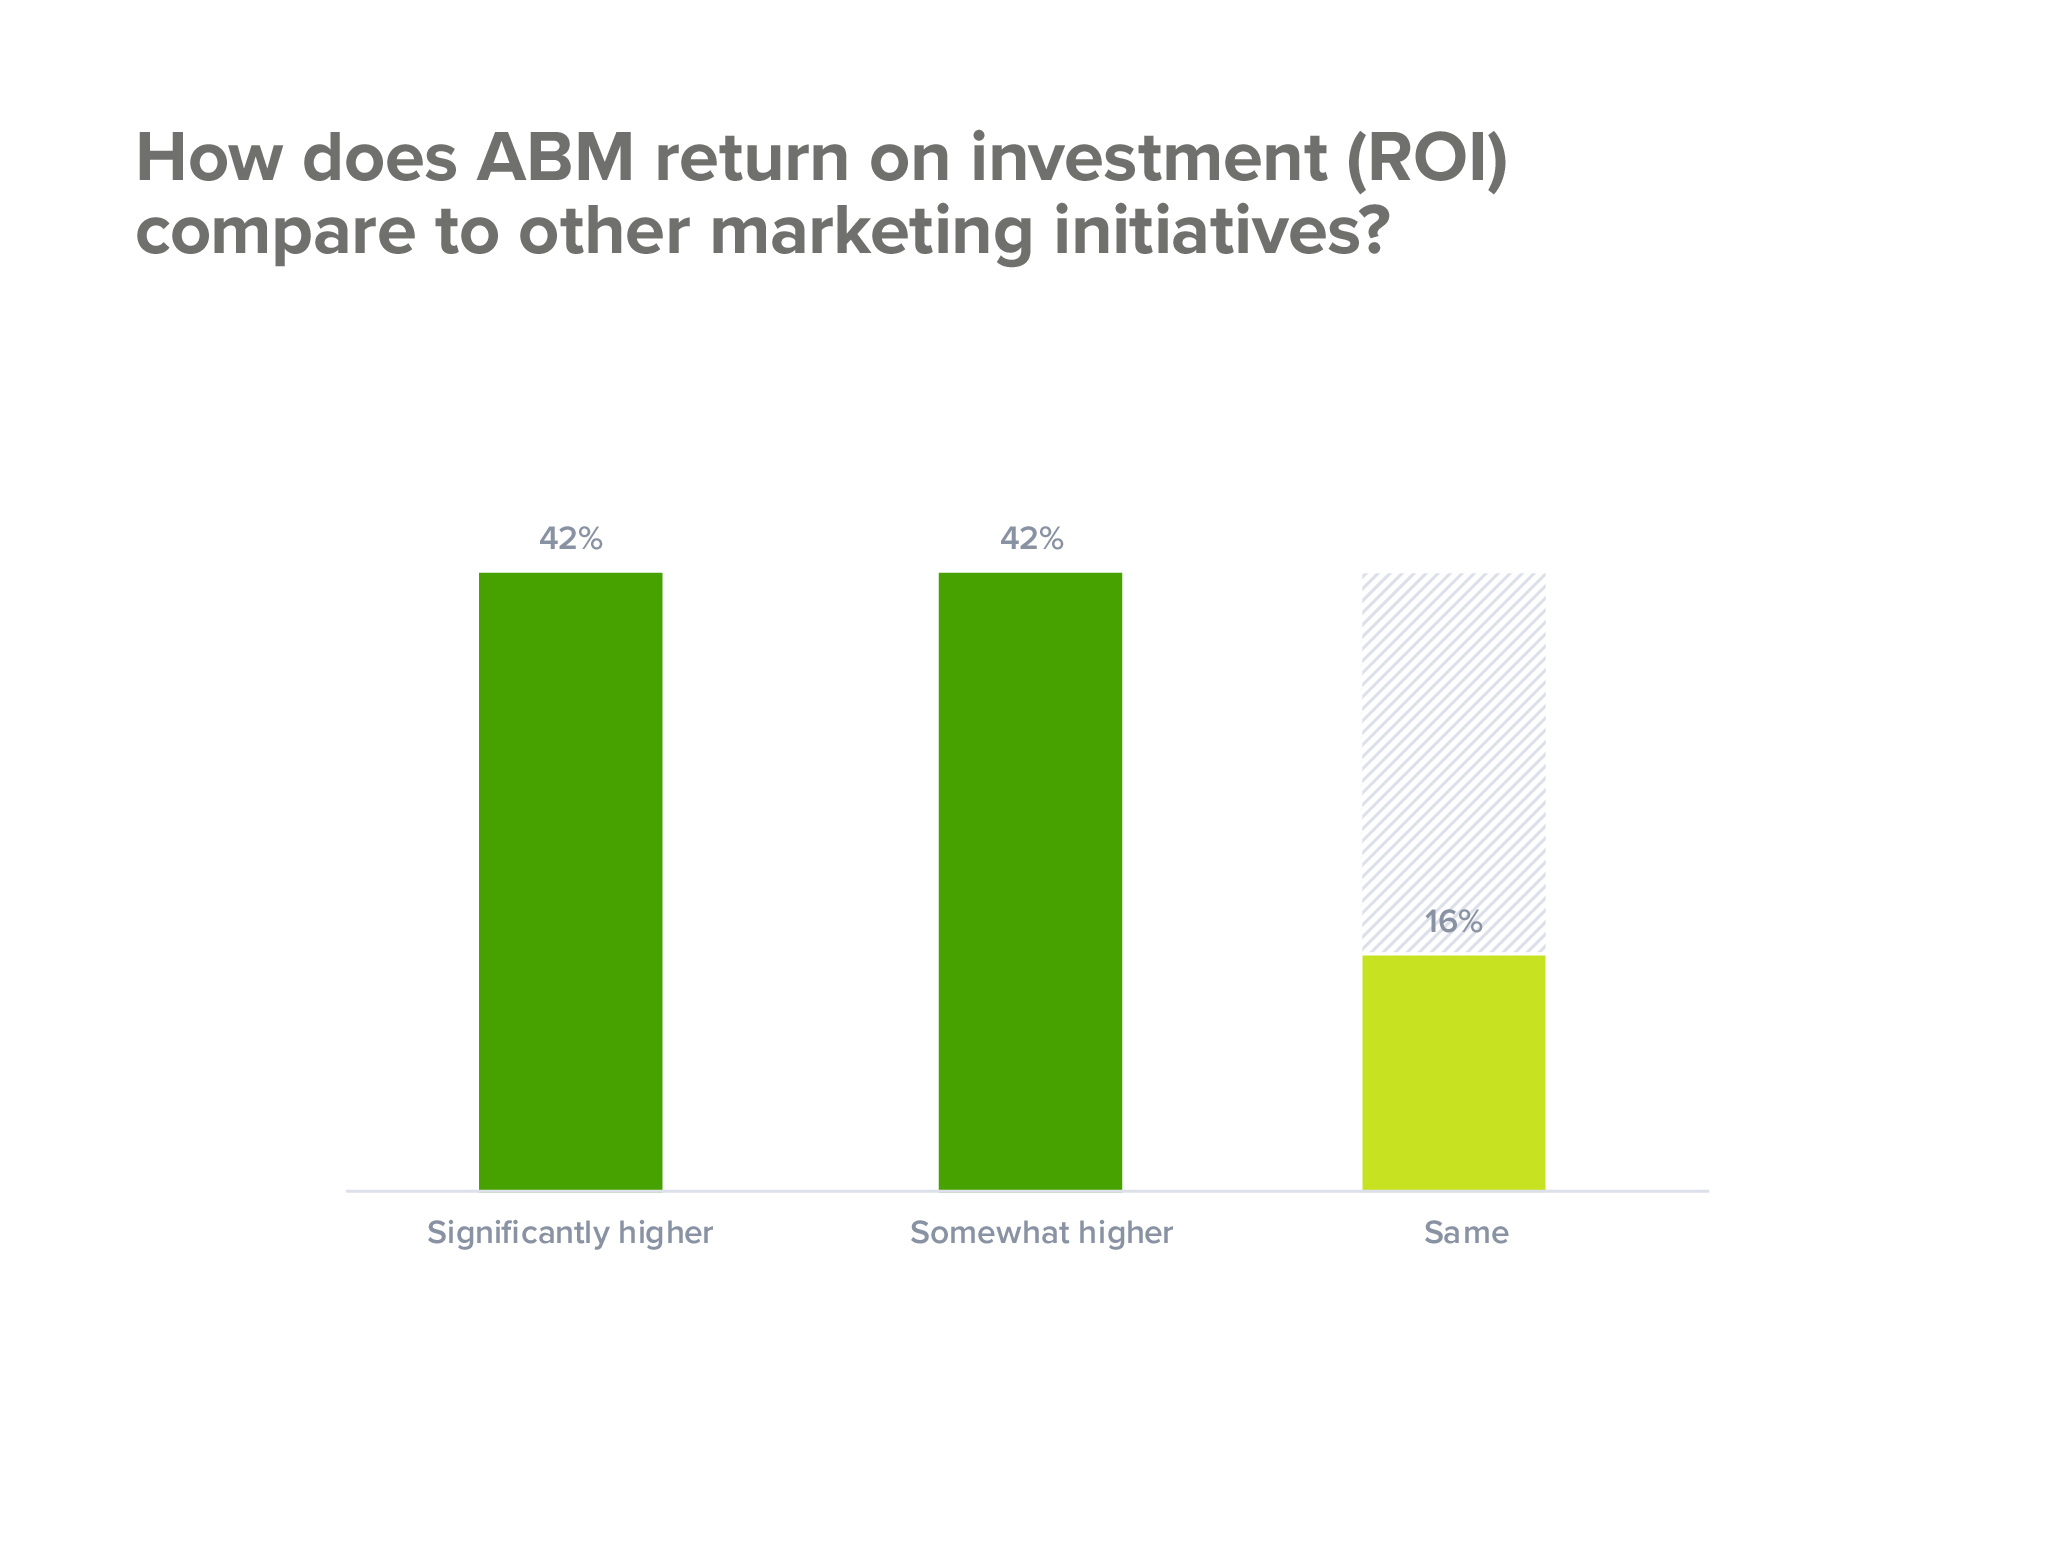 The ROI of account-based marketing